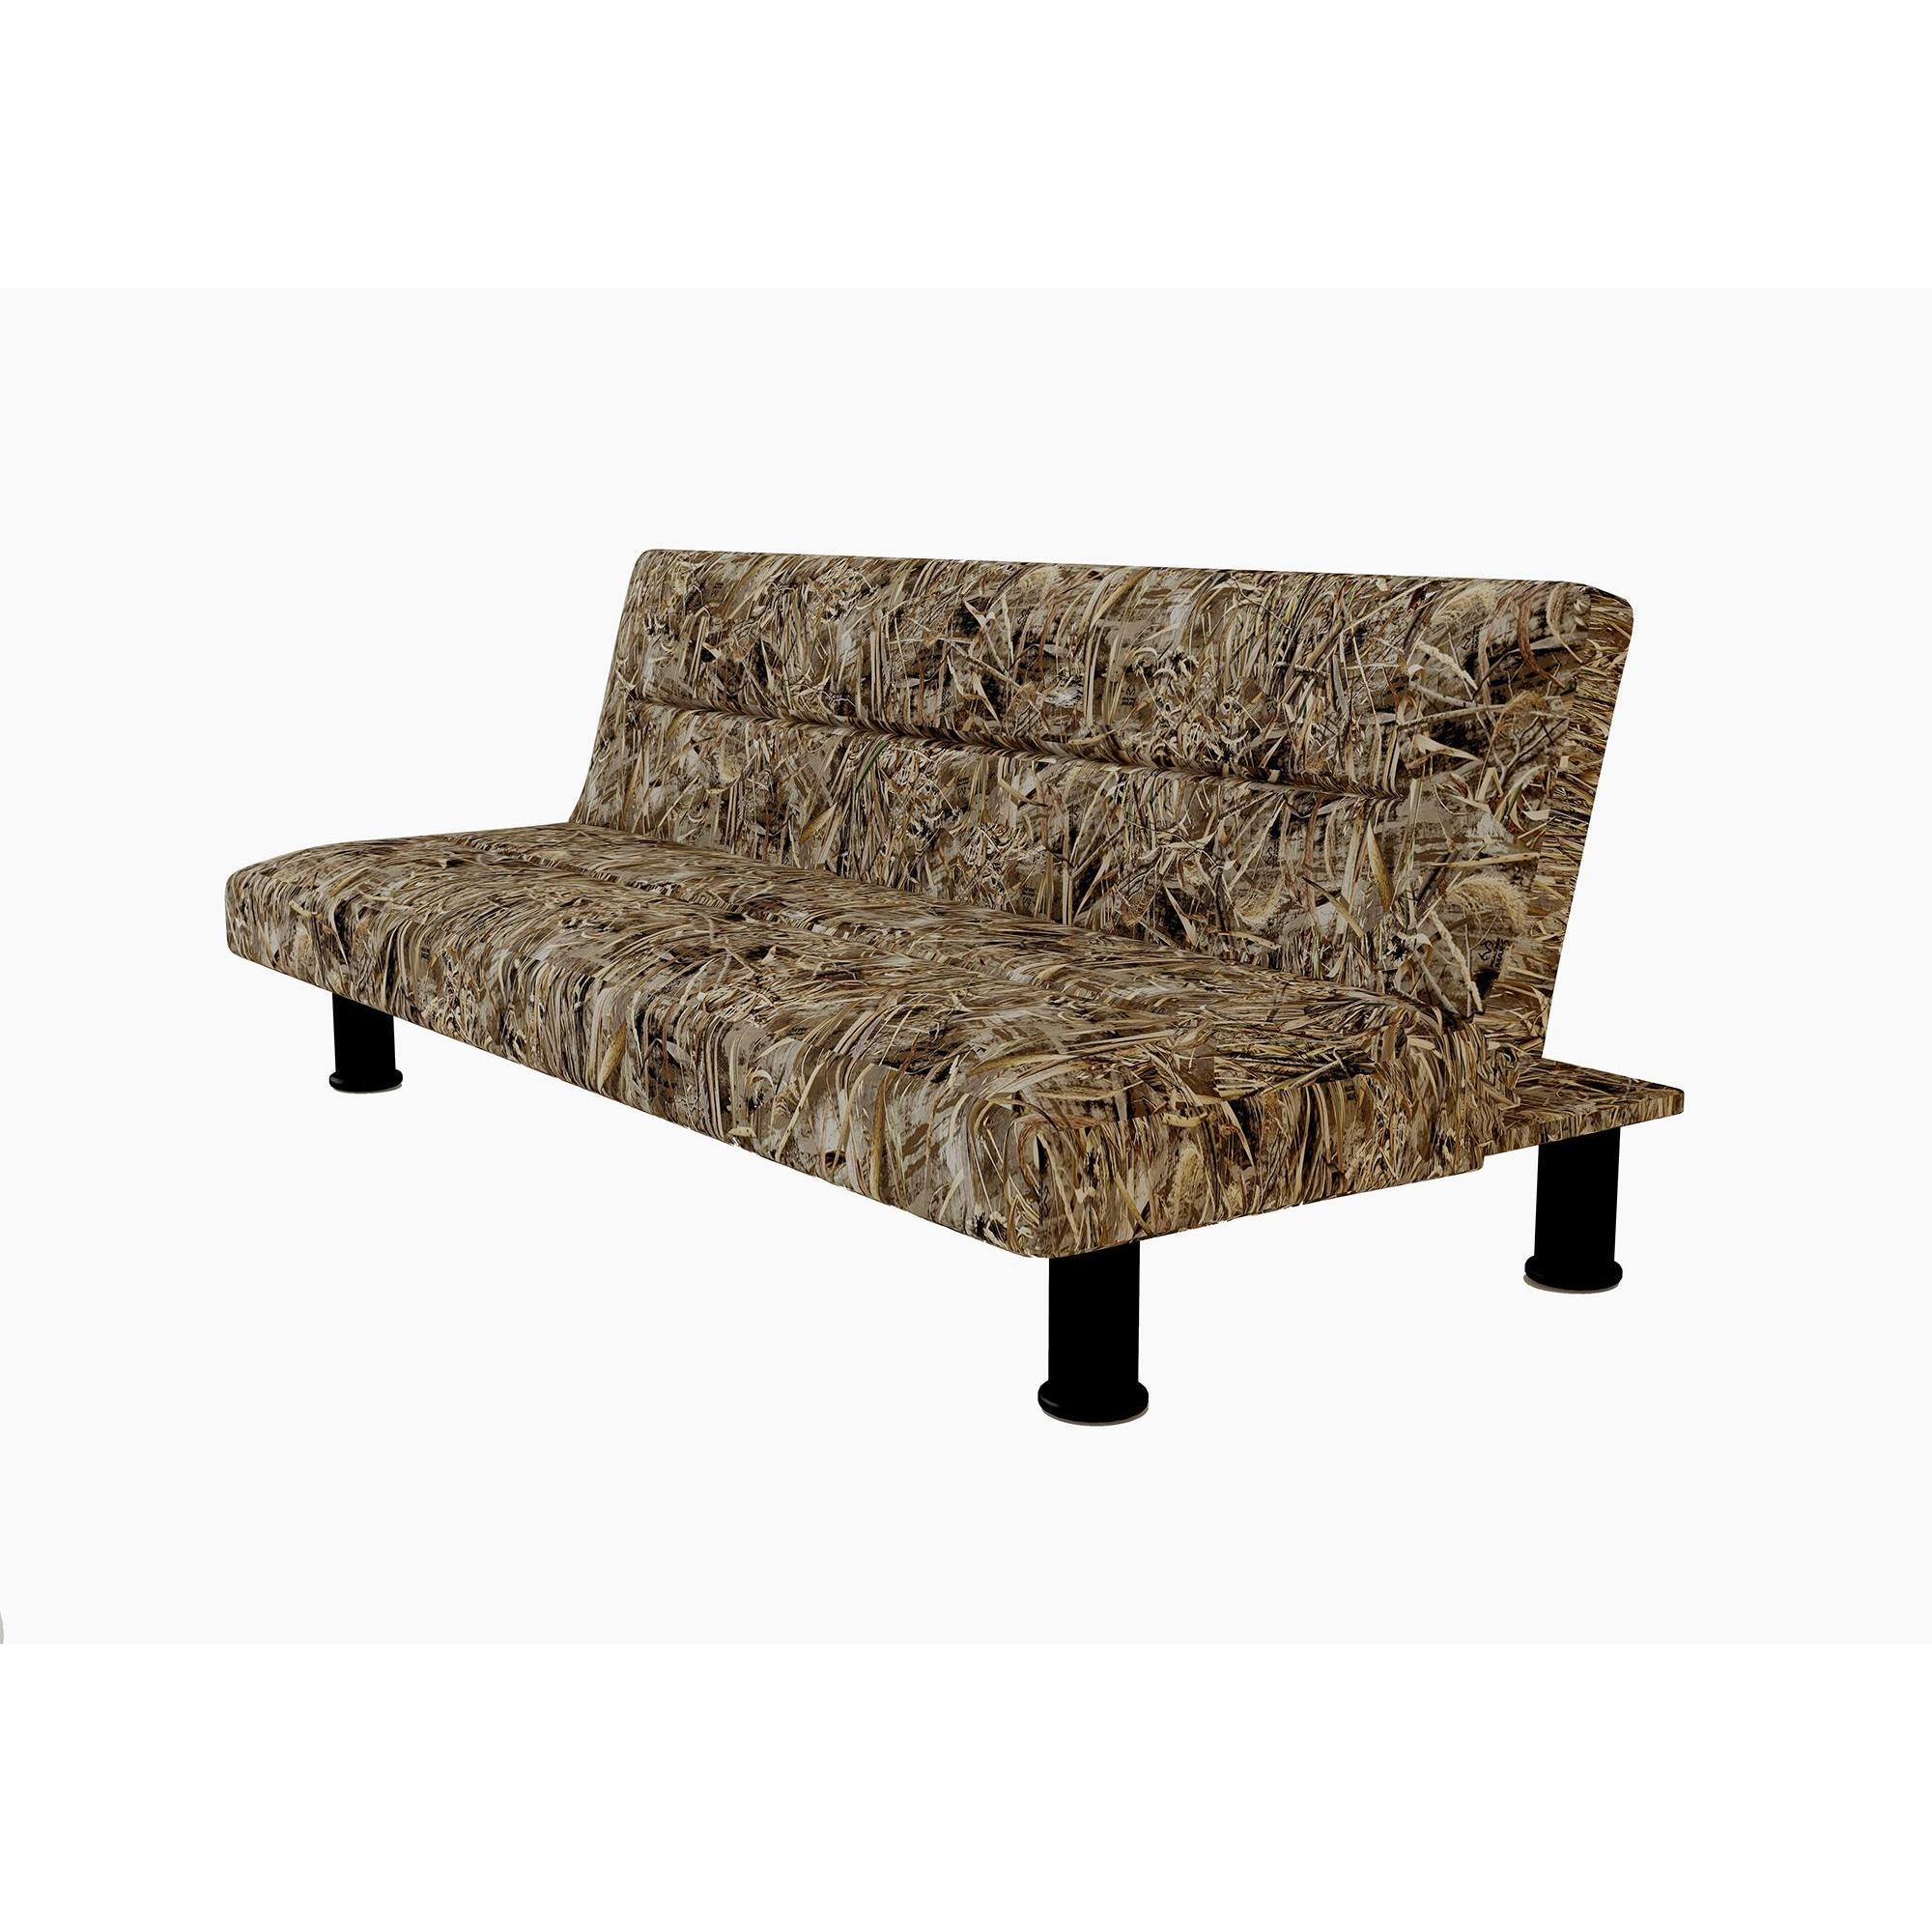 dhp realtree max 5 camouflage futon   free shipping today   overstock     18171732 dhp realtree max 5 camouflage futon   free shipping today      rh   overstock